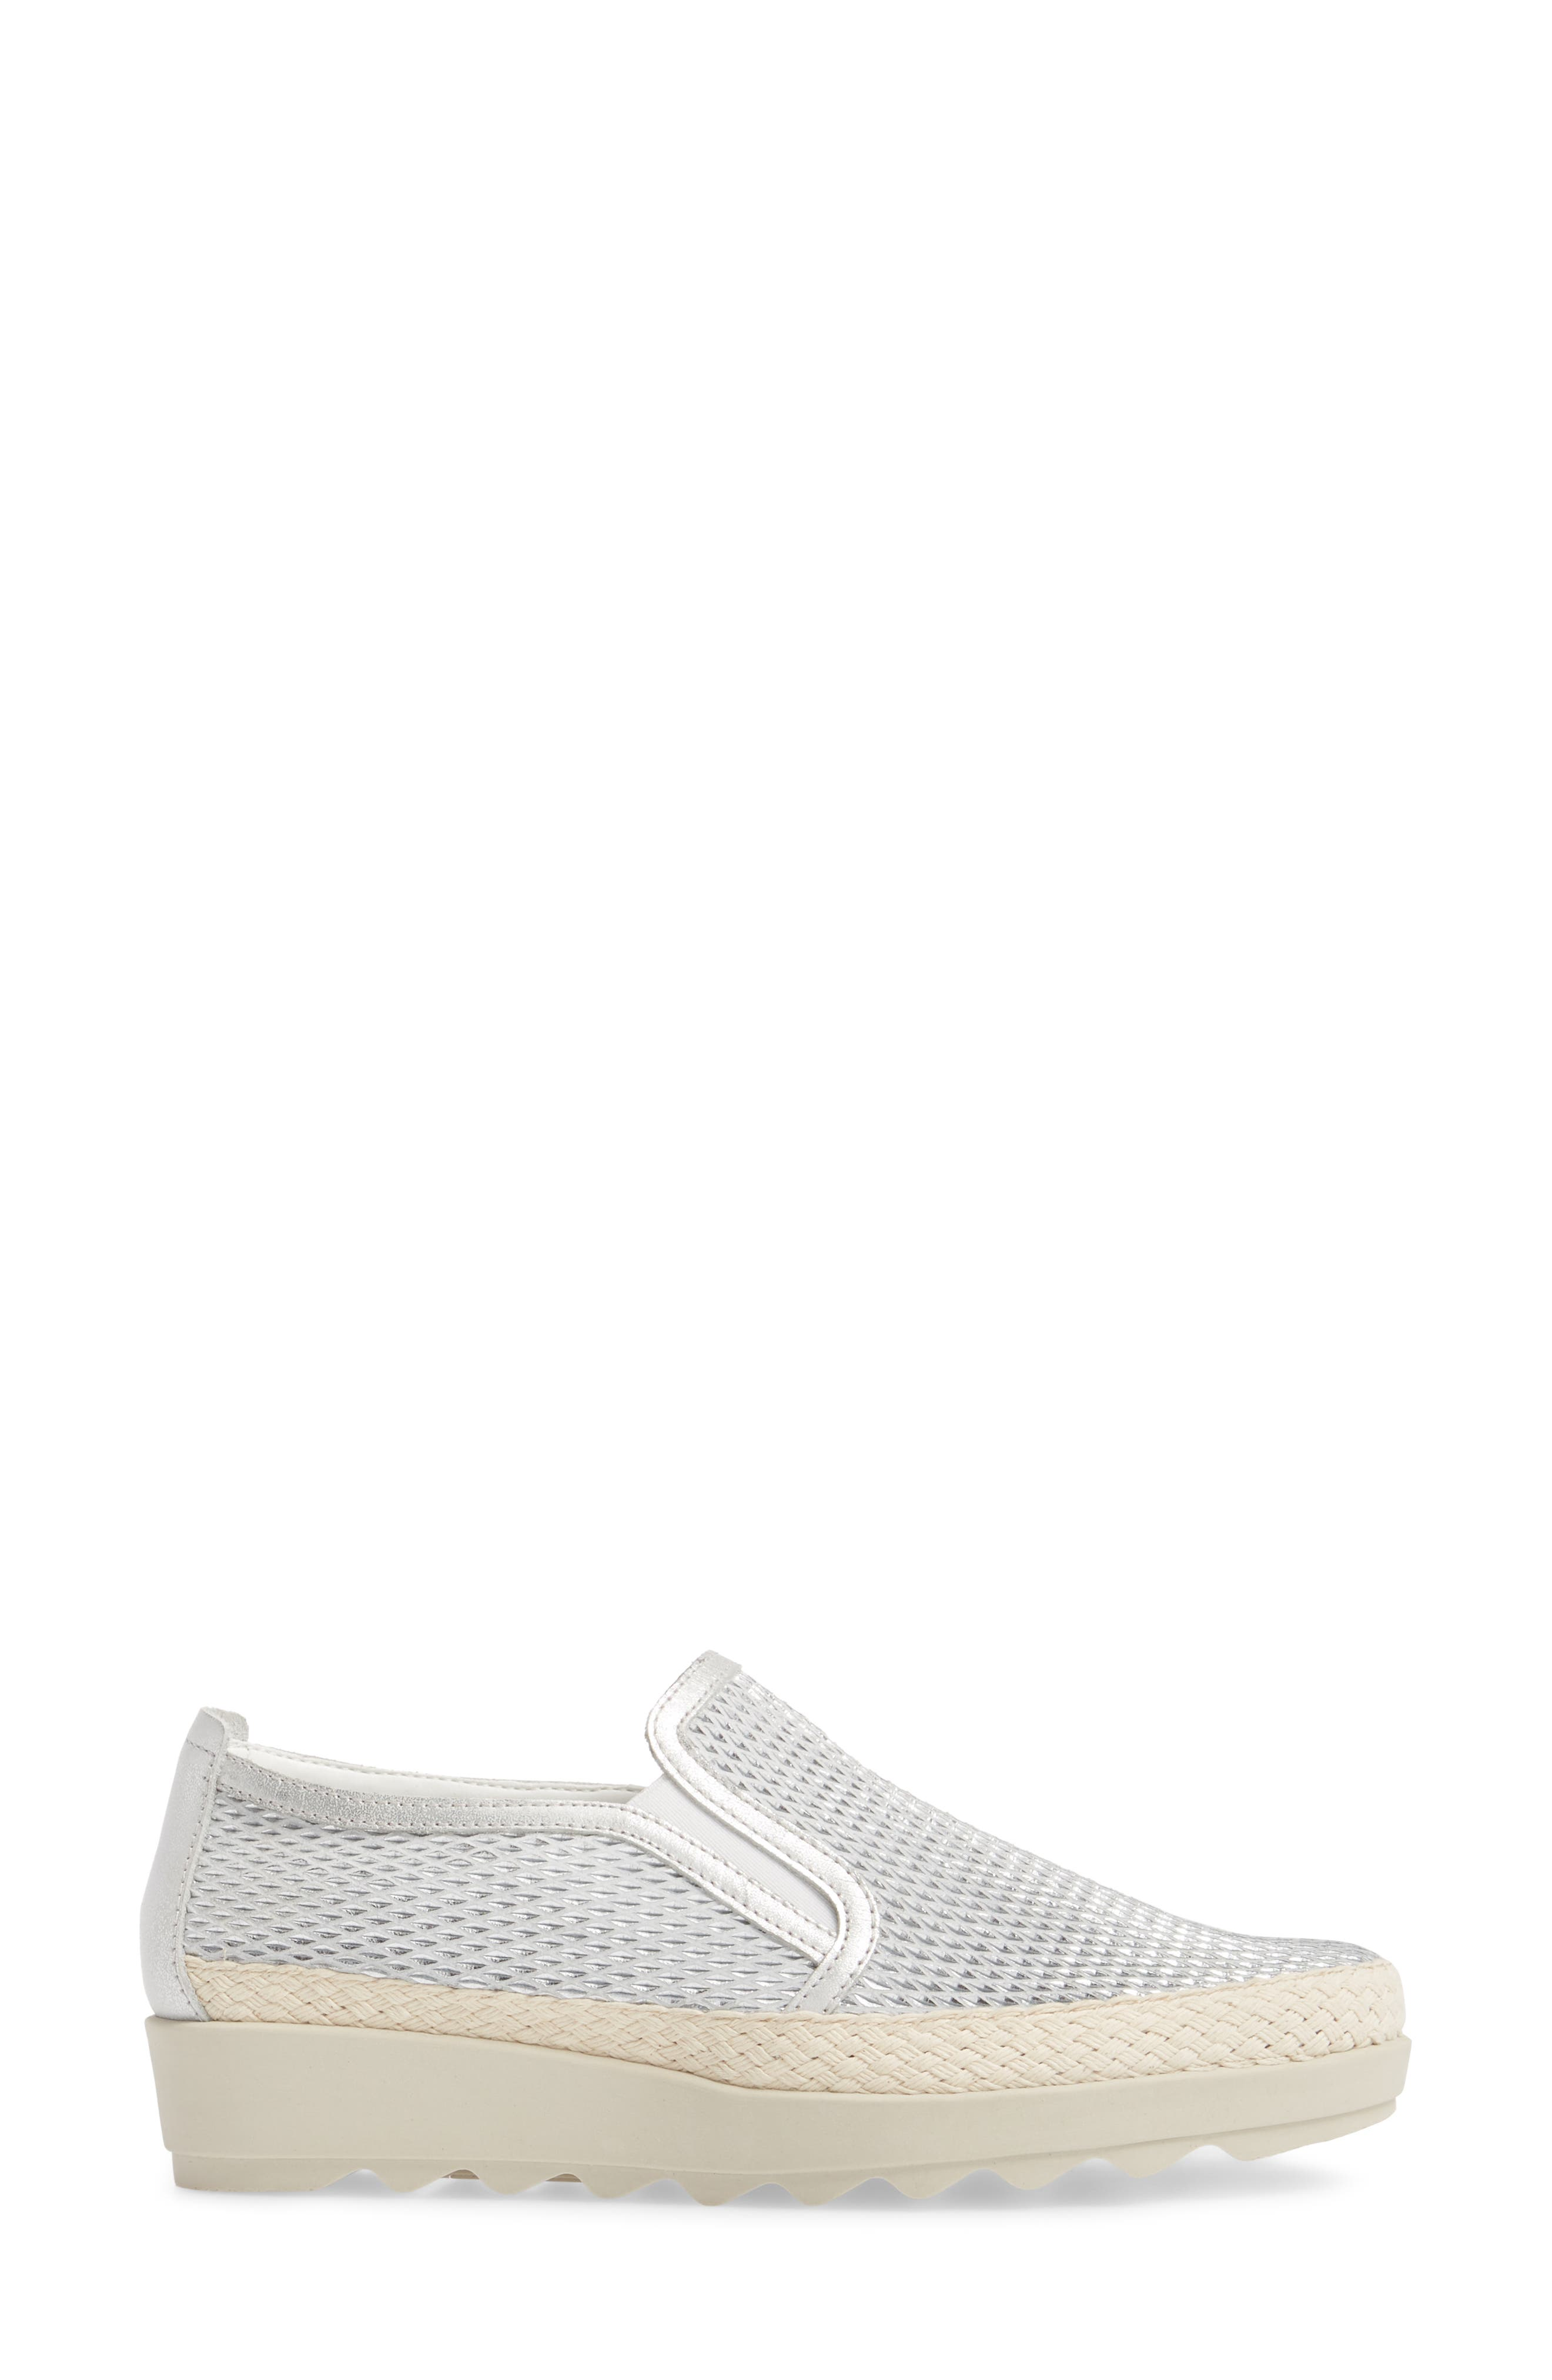 THE FLEXX,                             Call Me Perforated Slip-On Sneaker,                             Alternate thumbnail 3, color,                             WHITE/ SILVER LEATHER